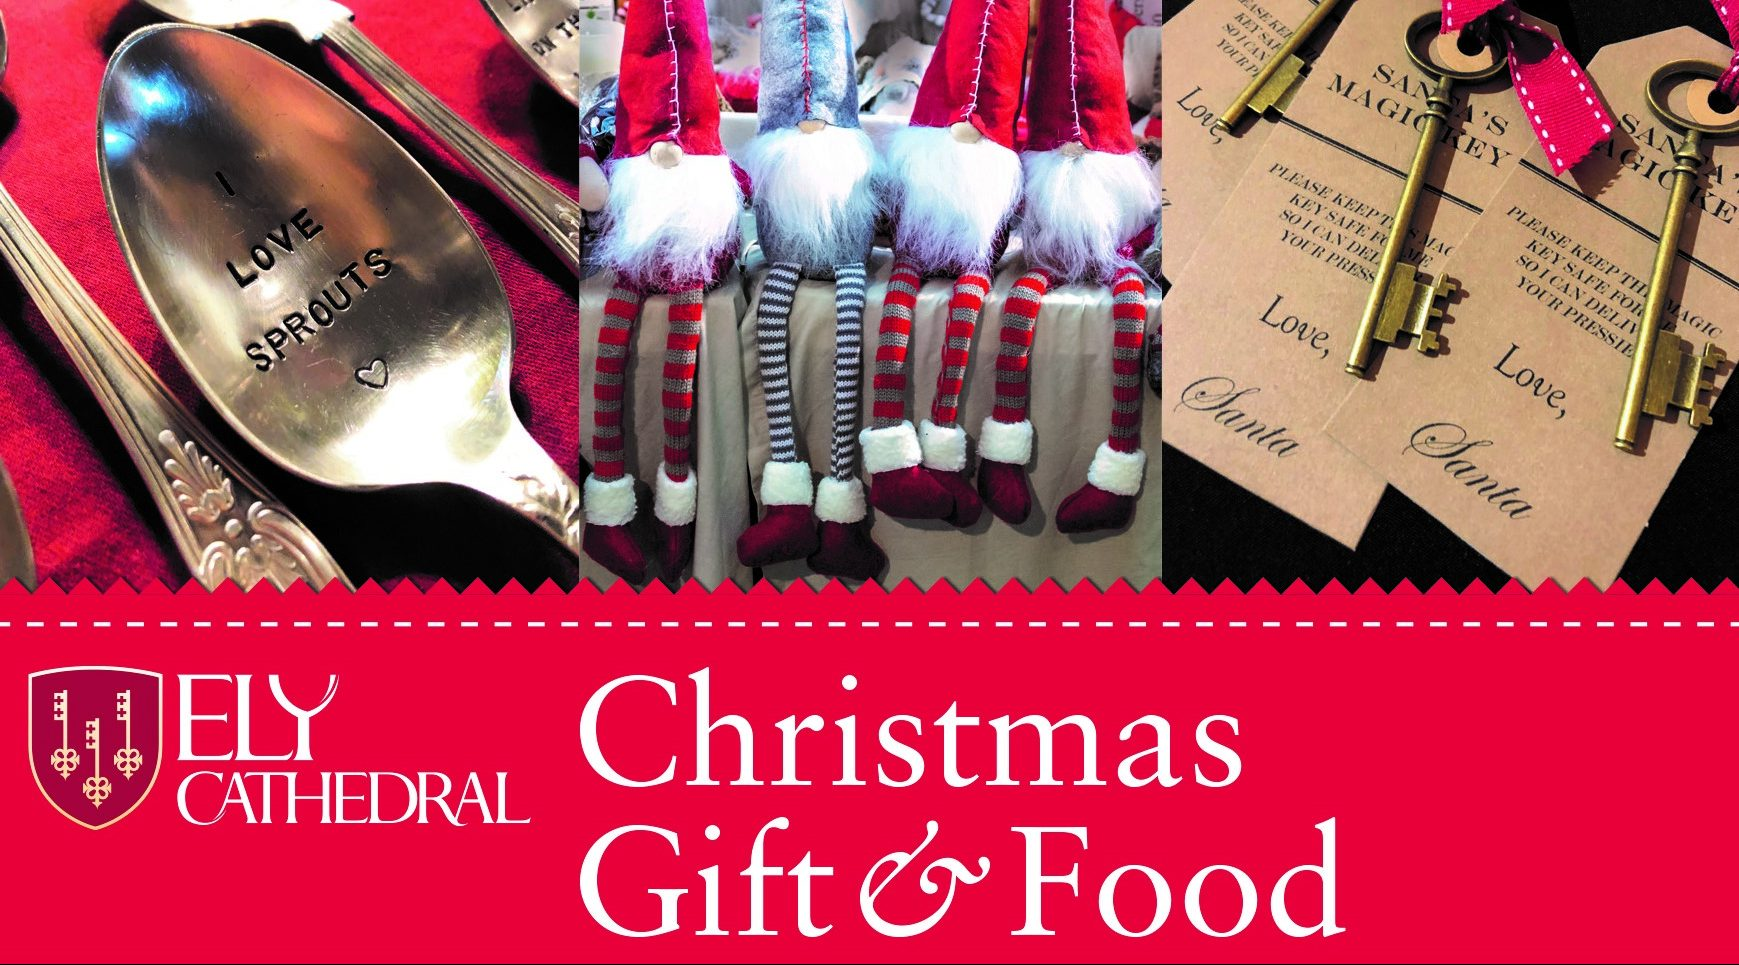 New traders and exciting activities announced for the 2019 Christmas Gift & Food Fair